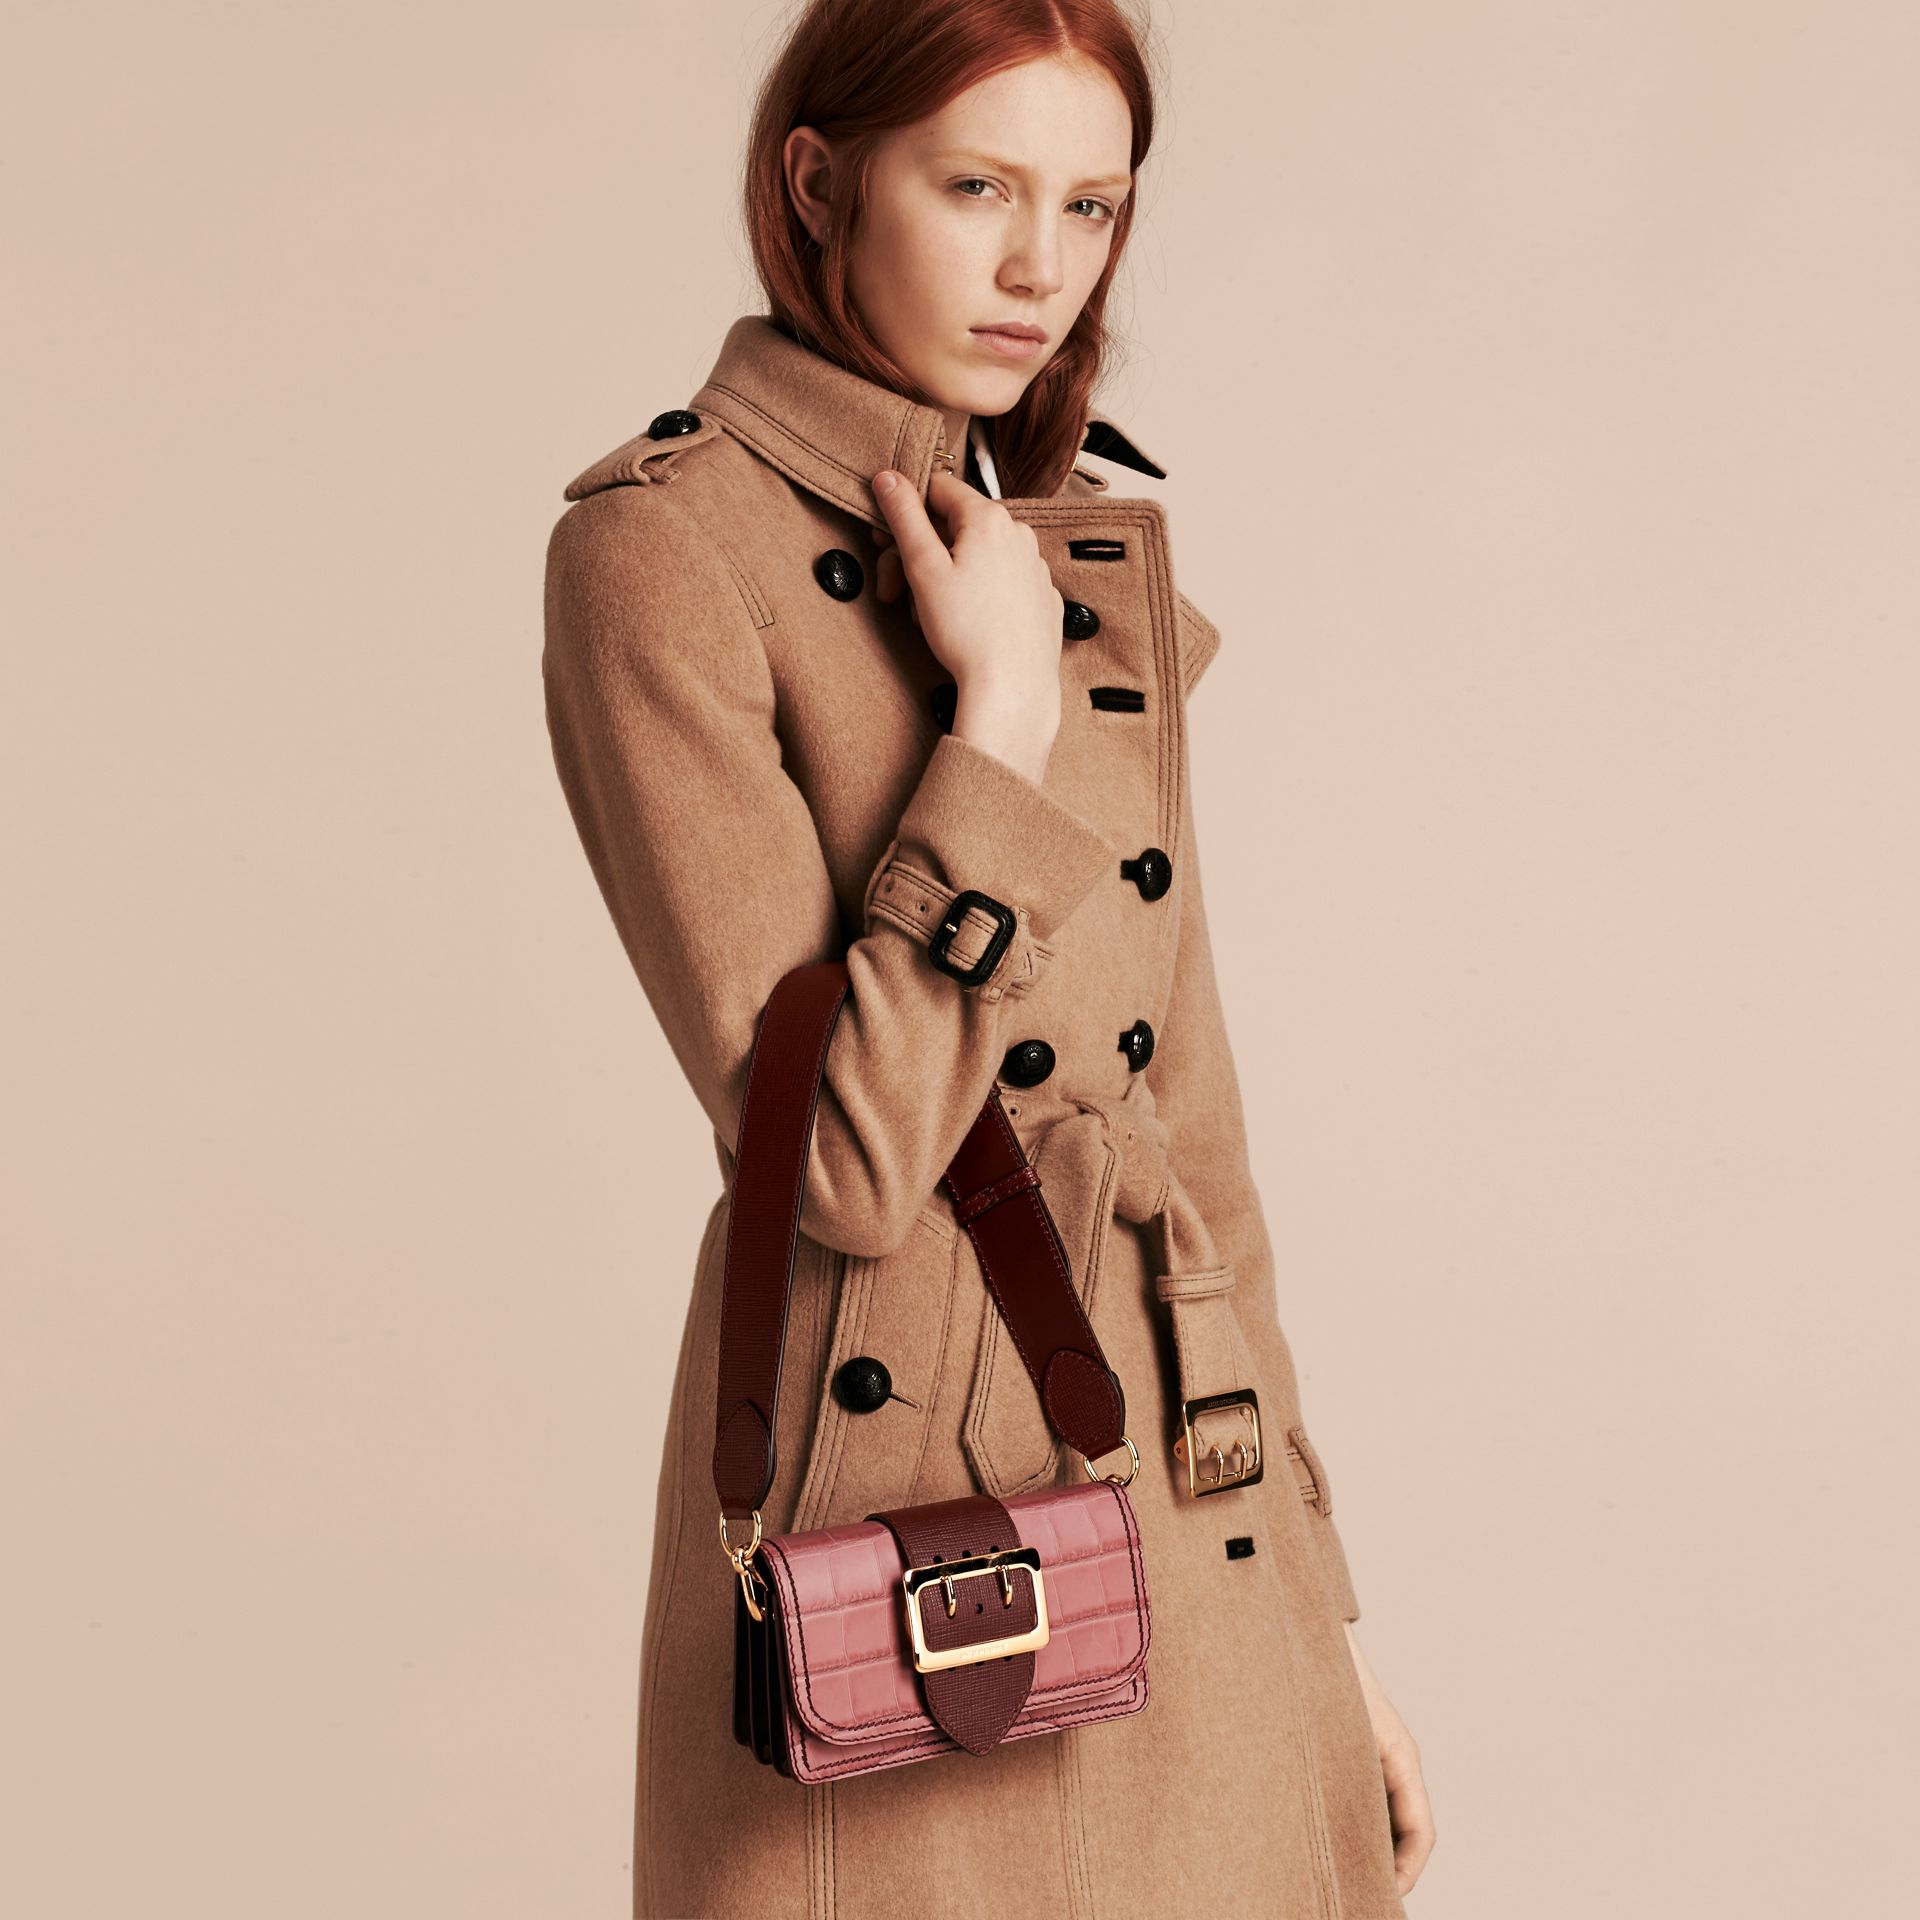 The Small Buckle Bag in Alligator and Leather in Dusky Pink/ Burgundy - Women | Burberry - gallery image 3